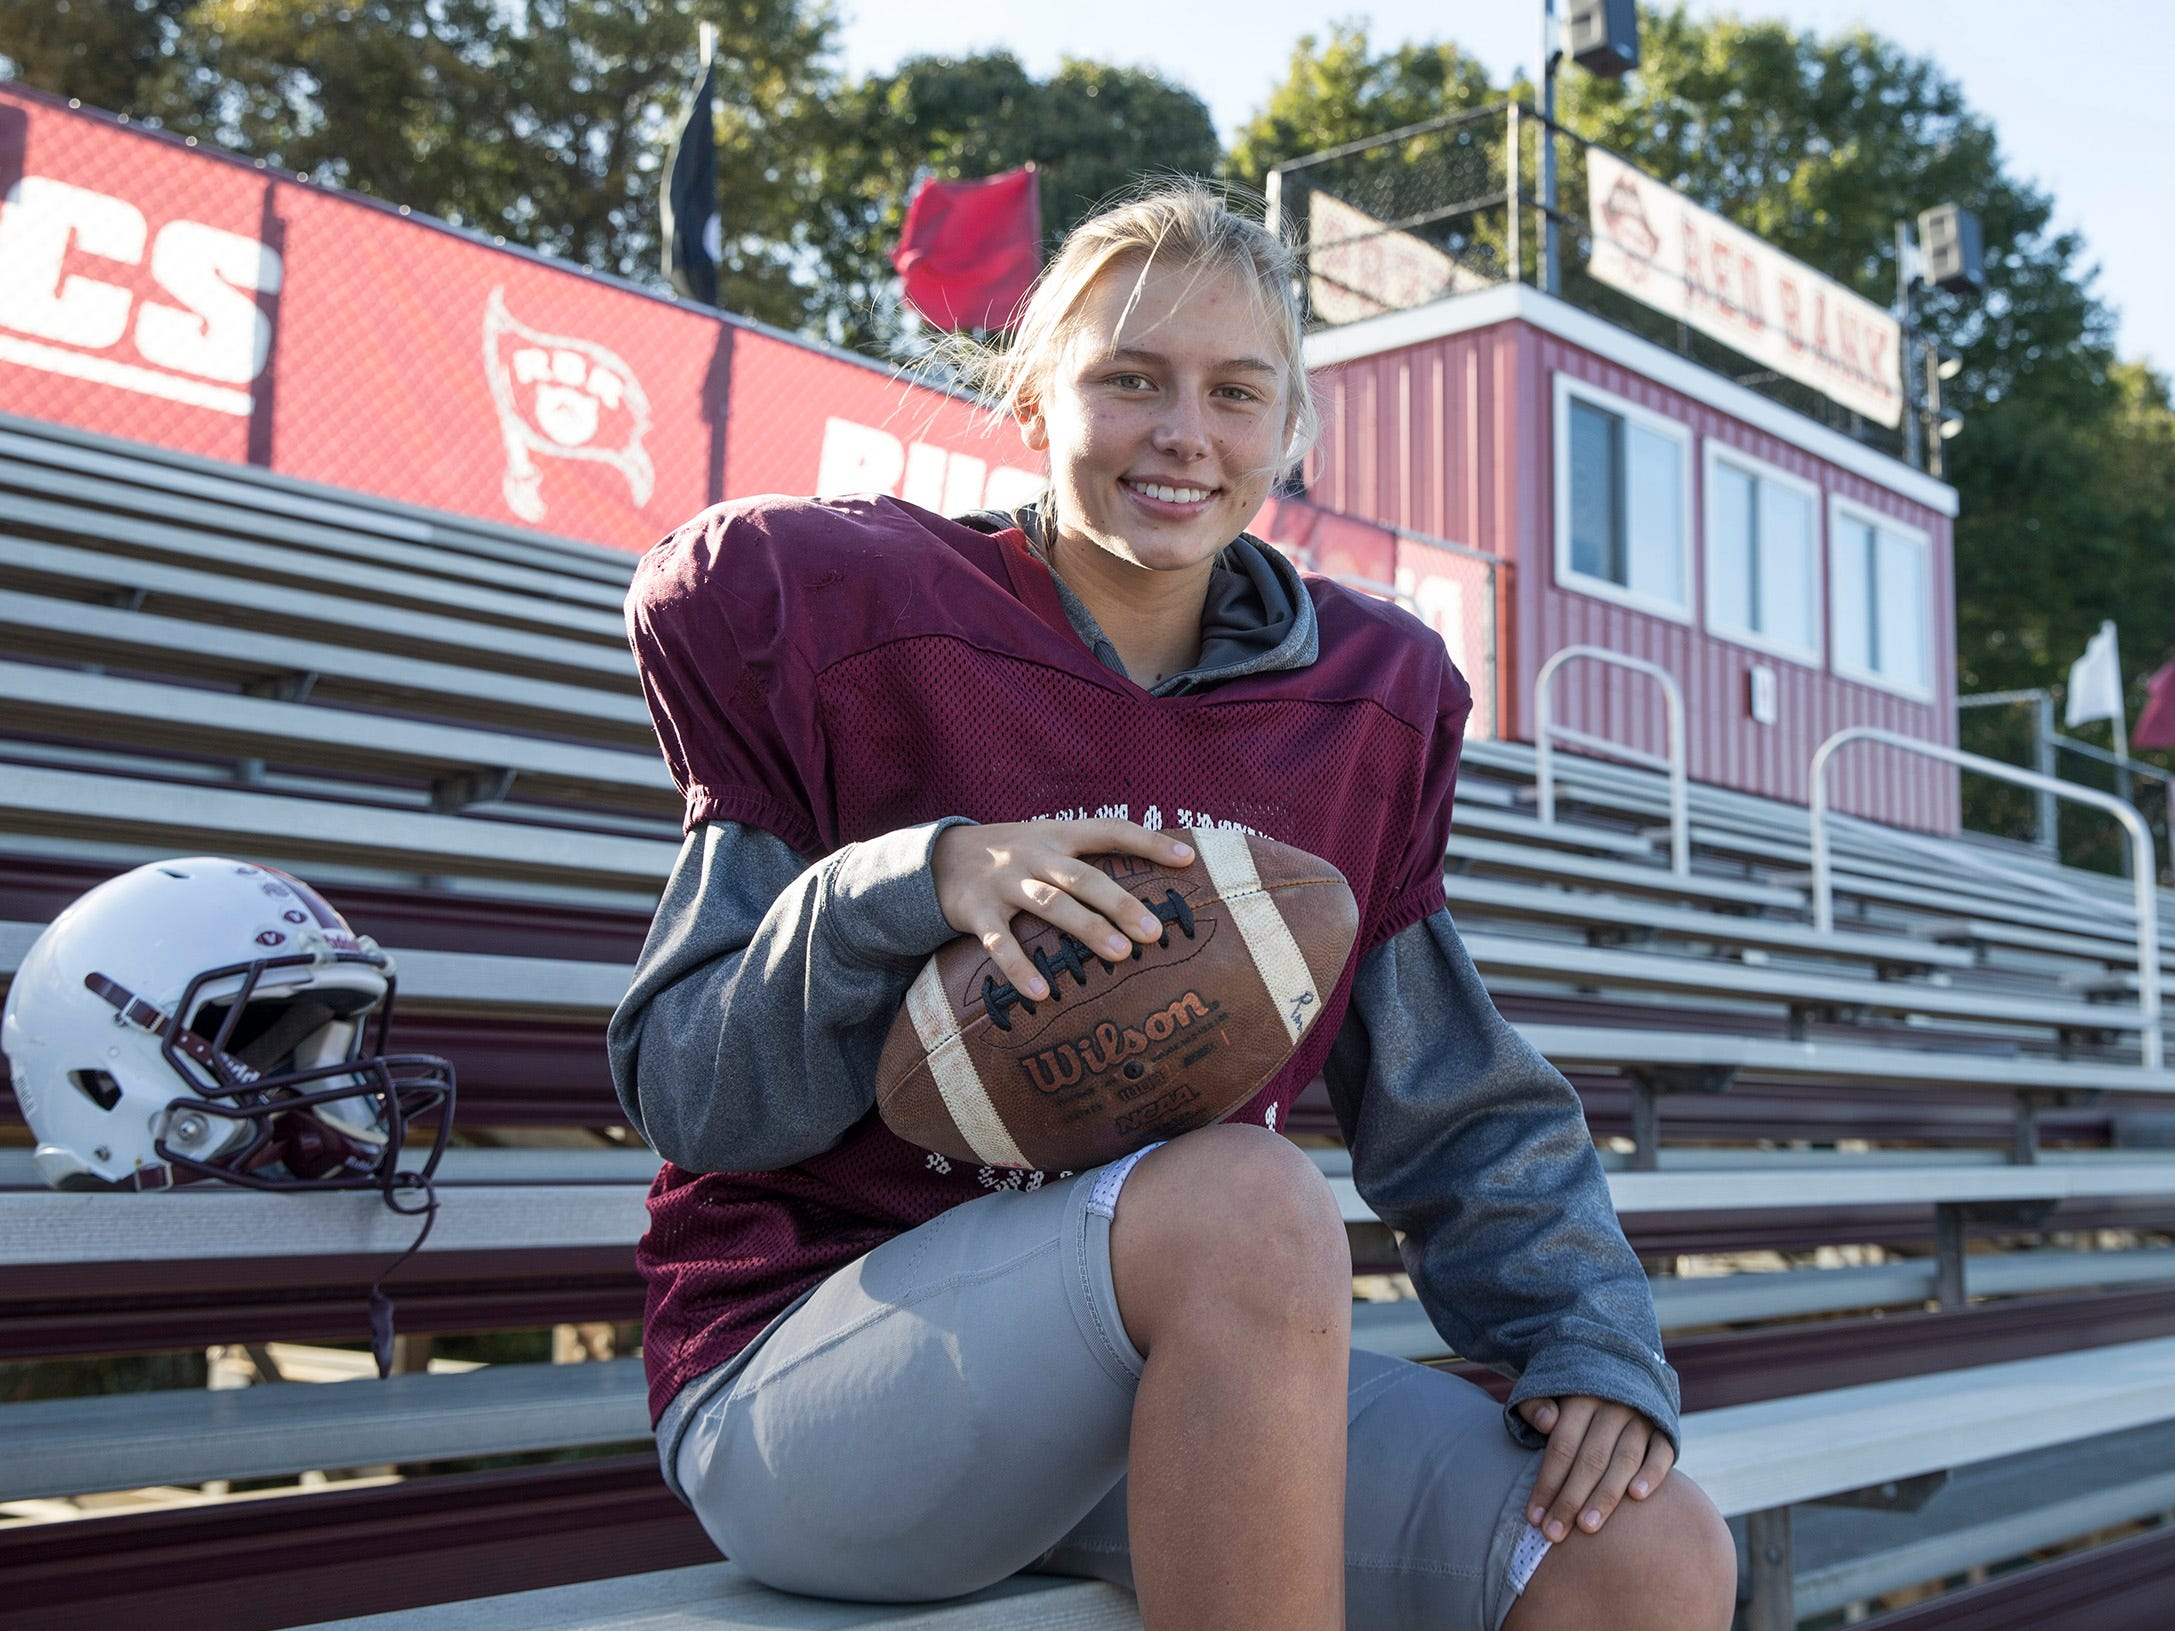 Liva Helt is an elite female soccer player who now plays football as a kicker for the varsity team at Red Bank Regional High School.  Little Silver, NJ on Thursday, October, 25, 2018